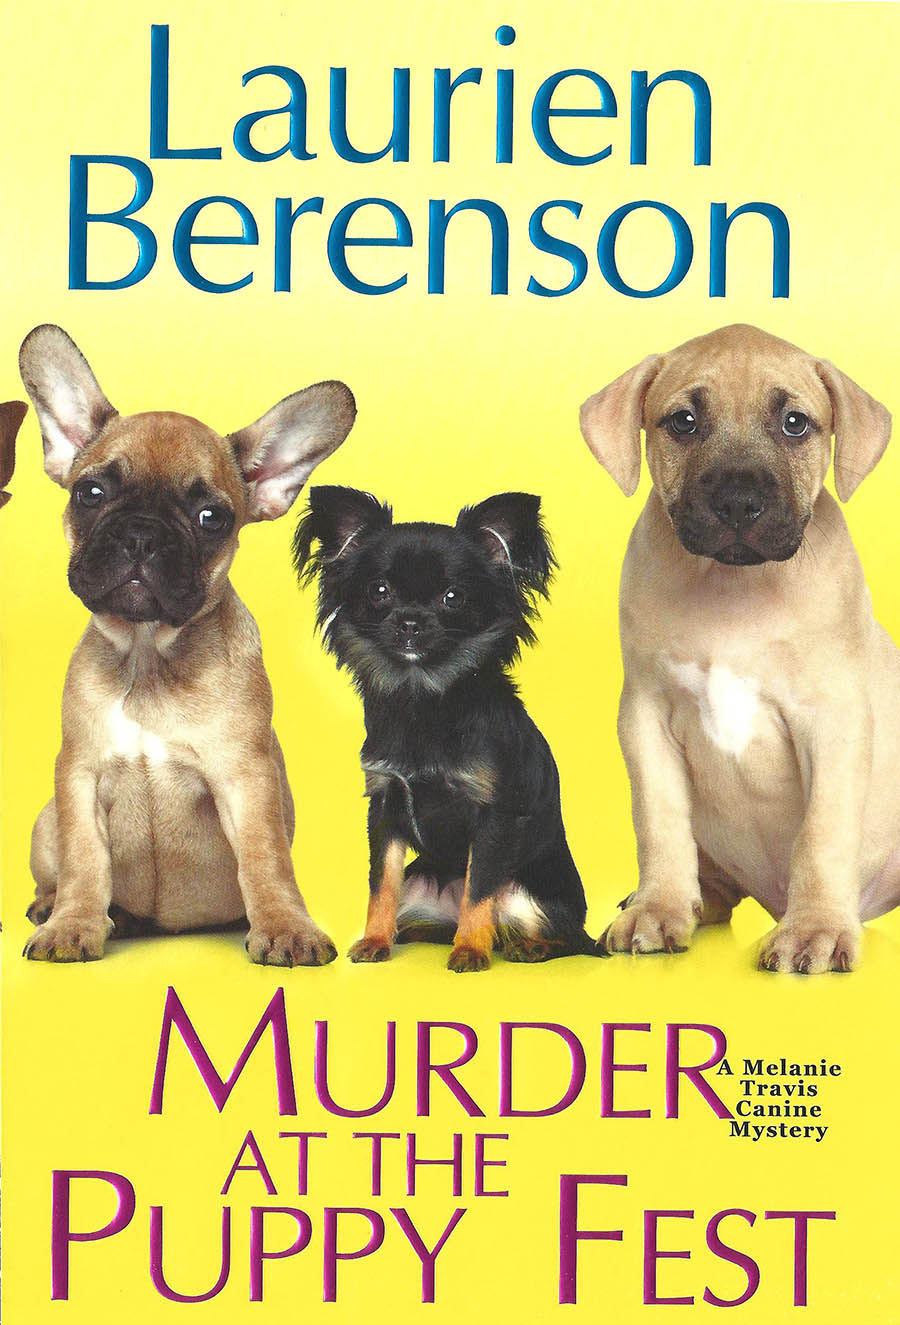 Murder at the Puppy Fest by Laurien Berenson